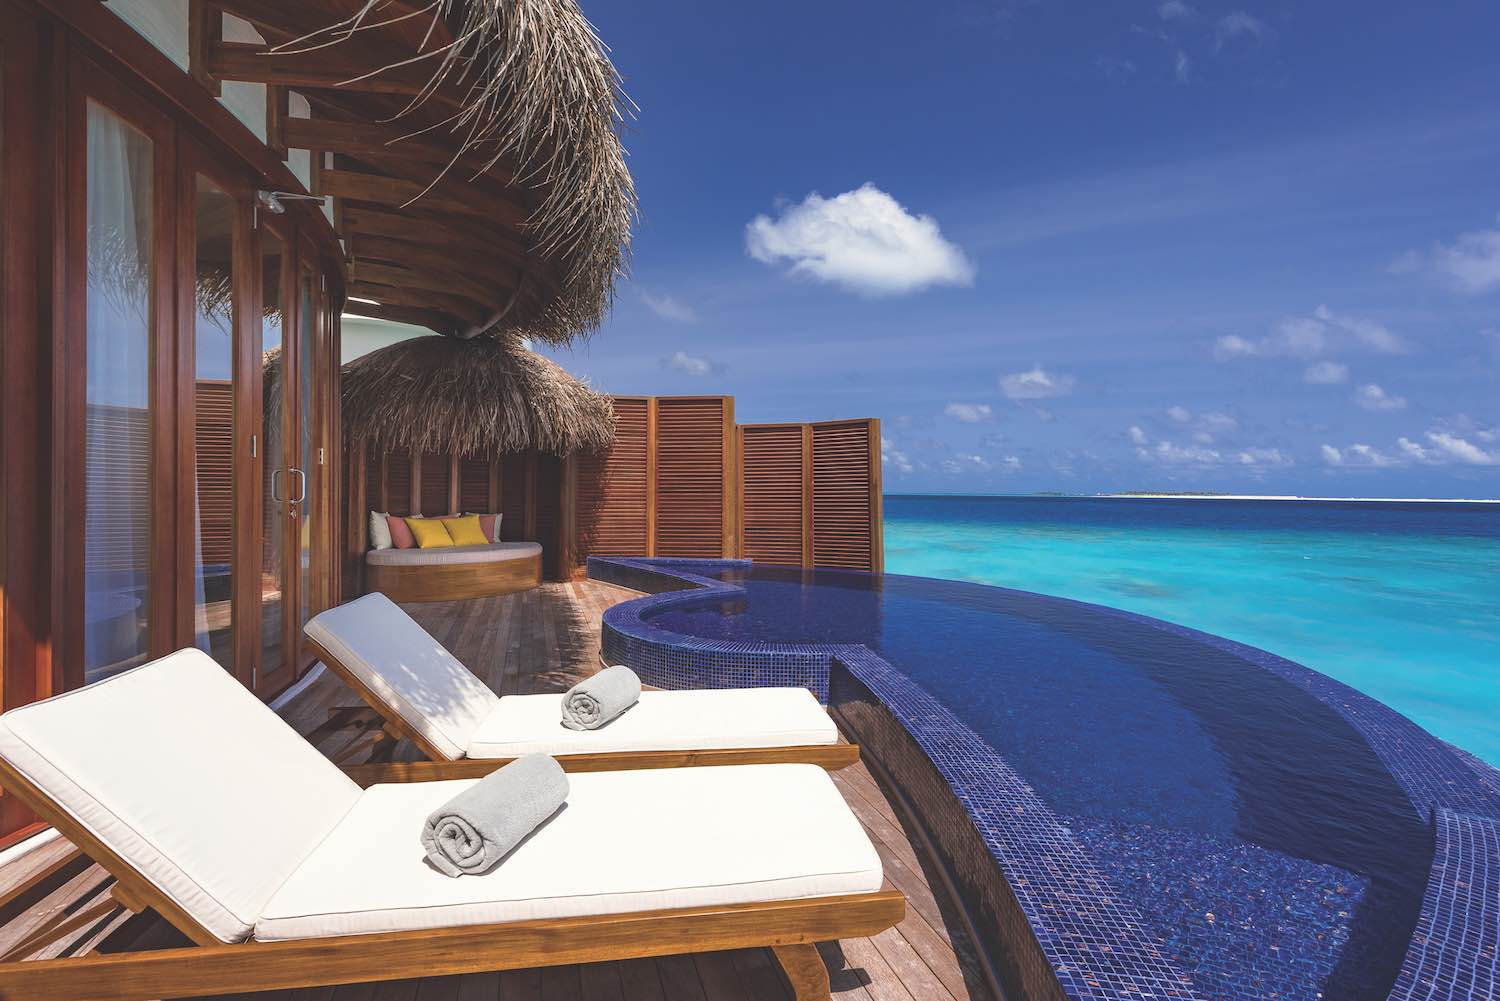 maldives-oblu-select-at-sangeli-honeymoon-water-suite-with-pool-2-holiday-honeymoon-vacation-invite-to-paradise.jpg